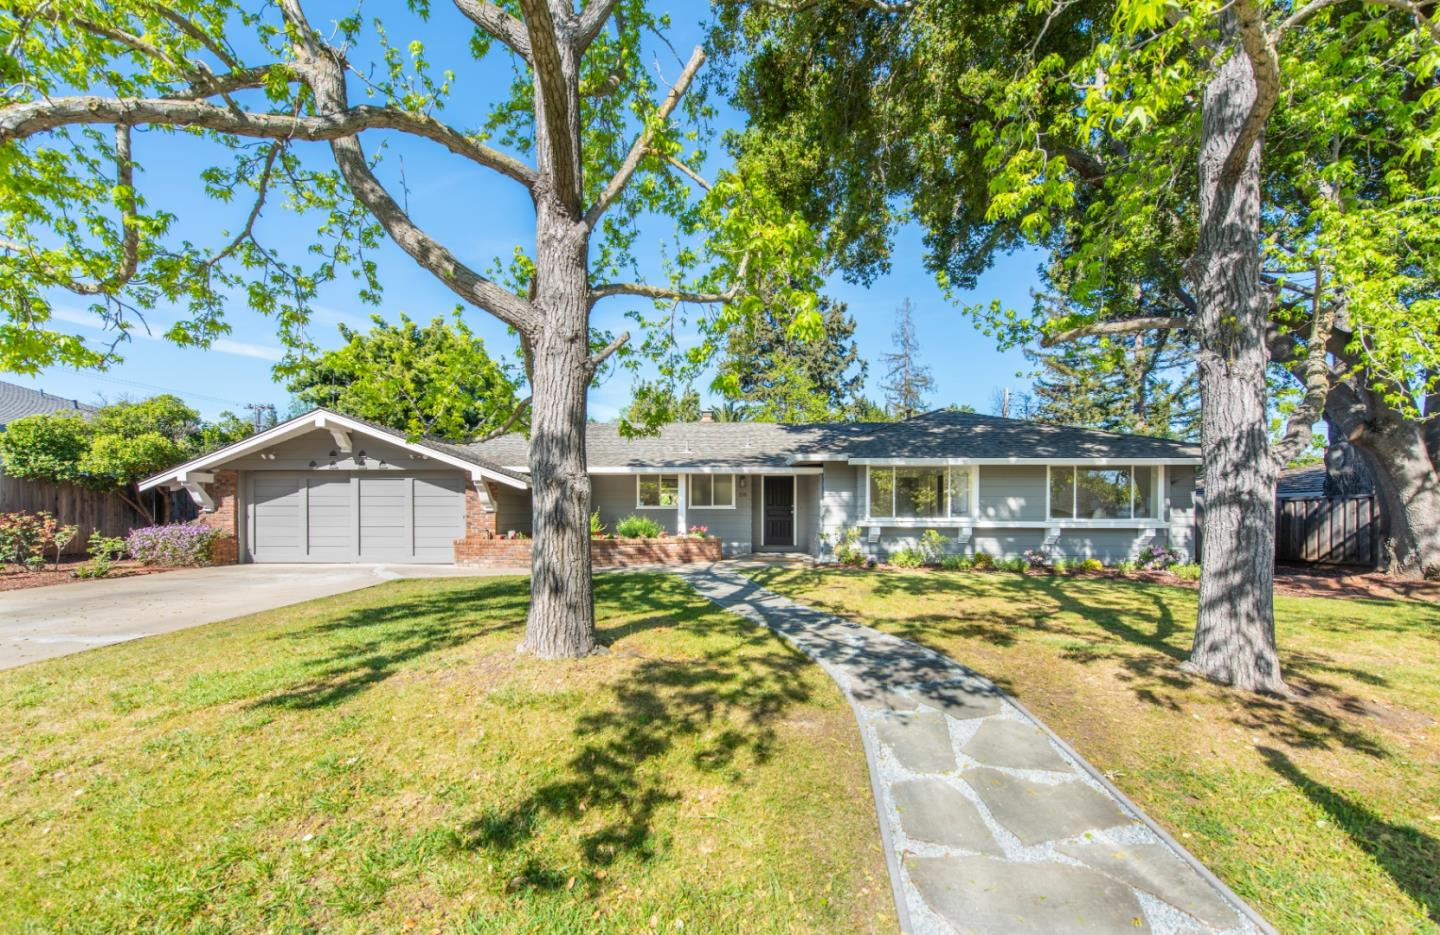 Detail Gallery Image 1 of 1 For 218 N Avalon Dr, Los Altos, CA, 94022 - 4 Beds | 2/1 Baths